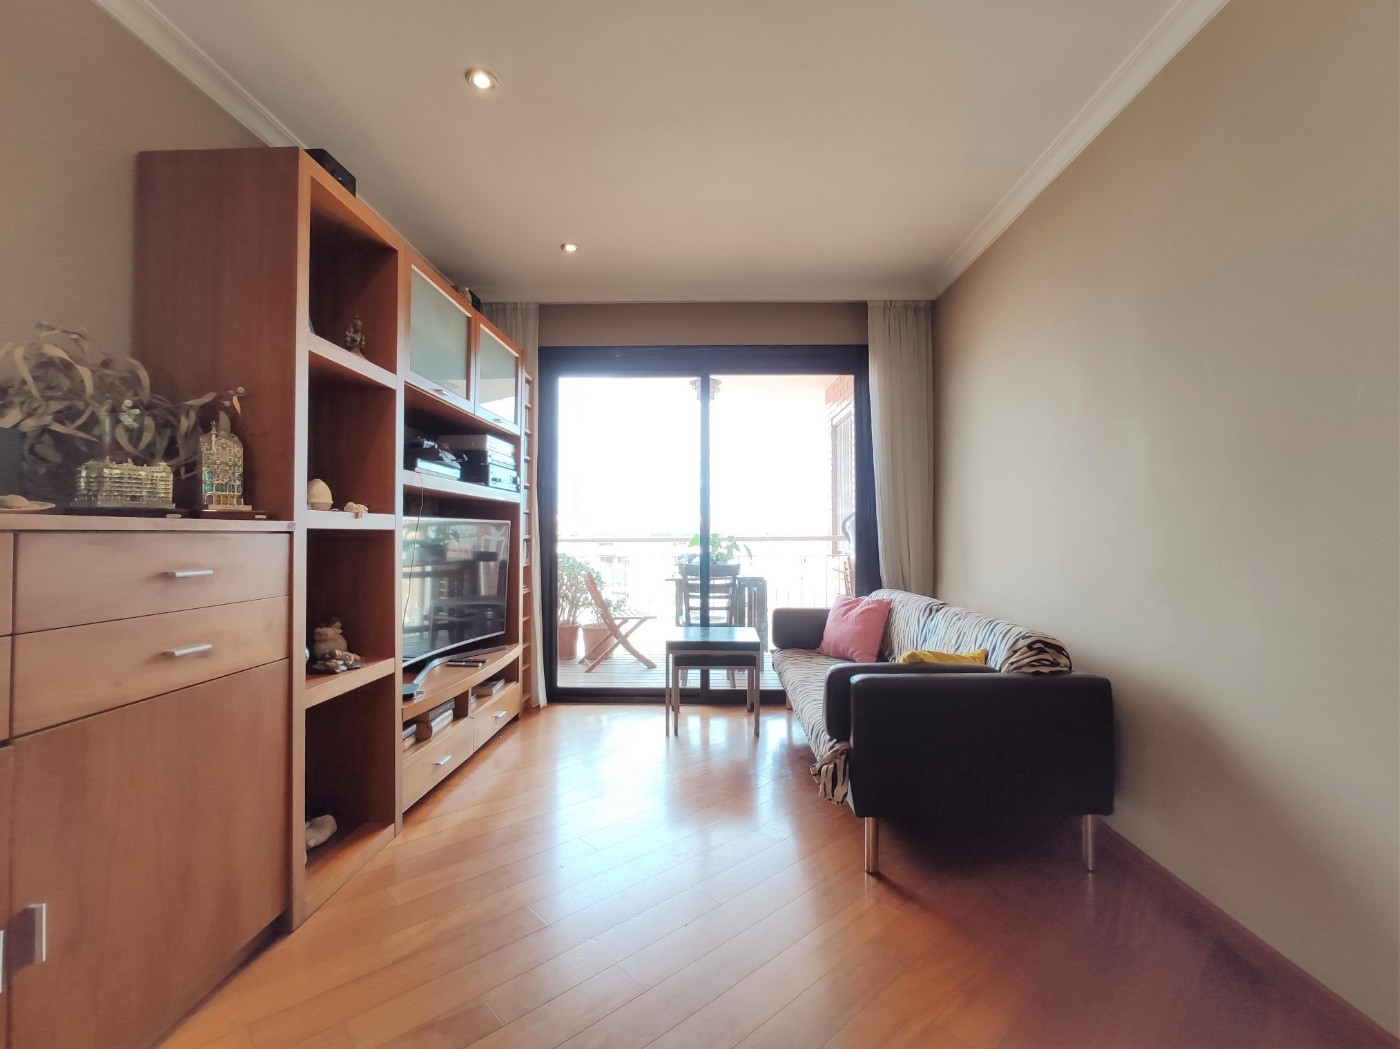 Apartment in Barcelona. Balcony.3 bedrooms. For sale: 290.000 €.